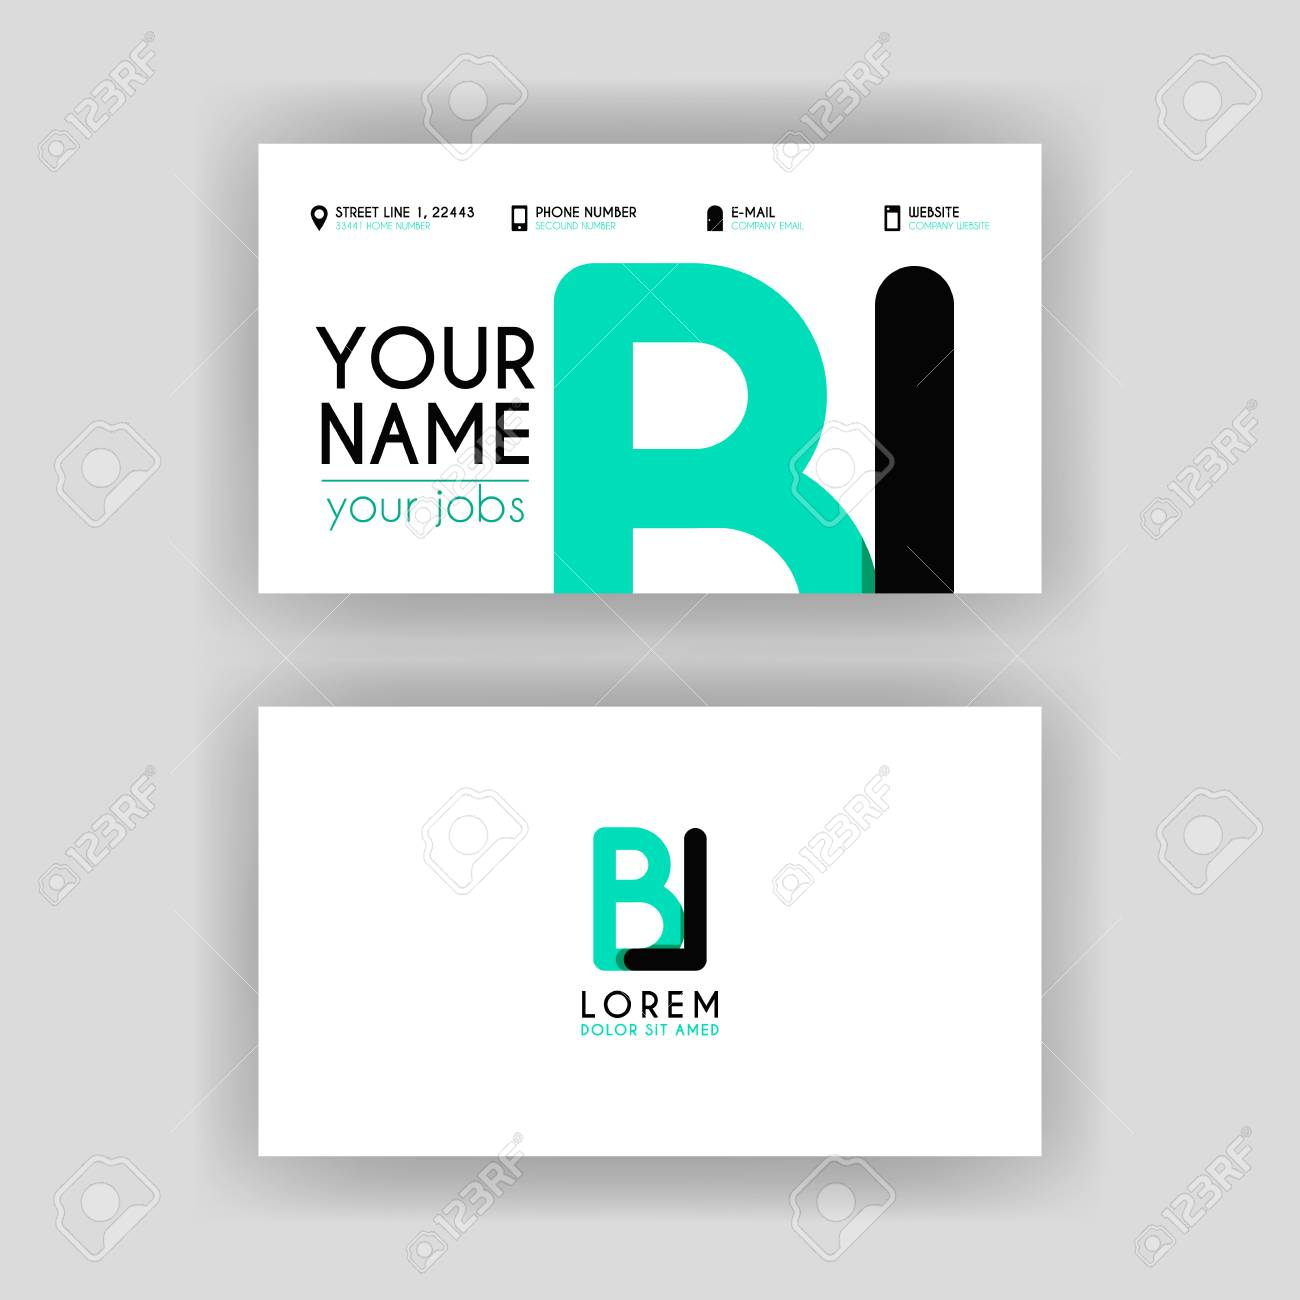 Simple Business Card With Initial Letter BL Rounded Edges Royalty ...